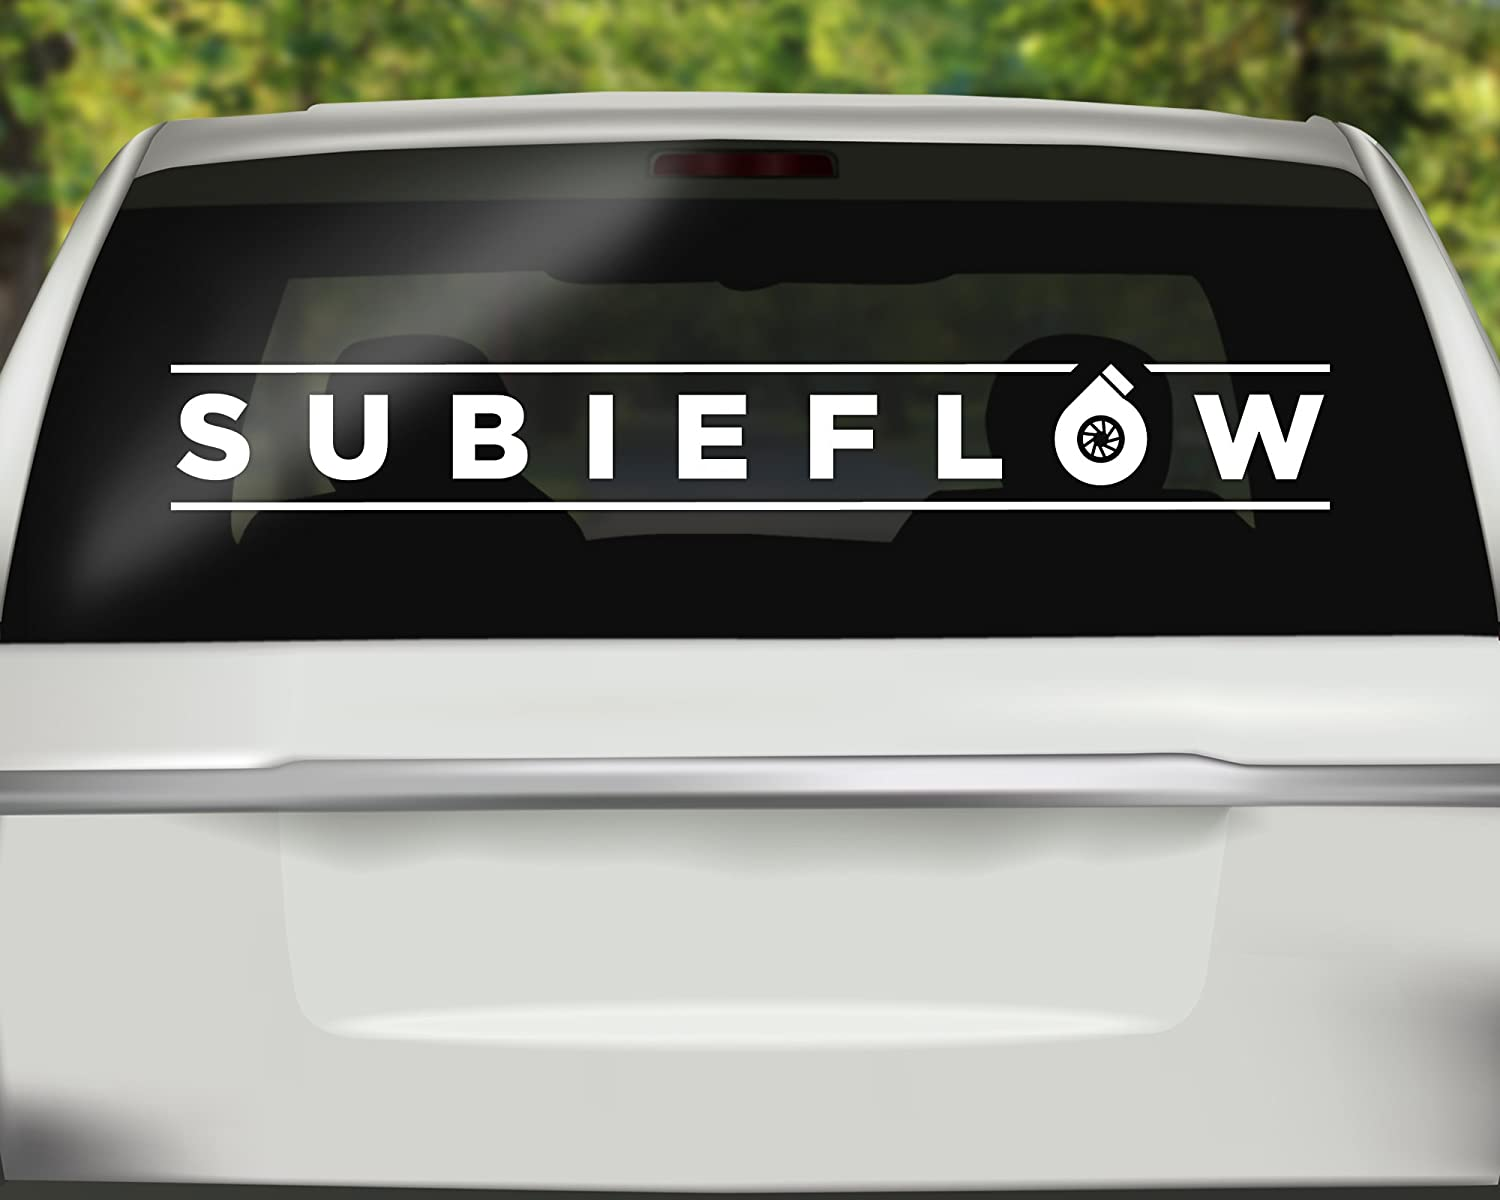 Subieflow JDM Vinyl Sticker Cut-Out Vinyl Decal for vehicle window or bumper